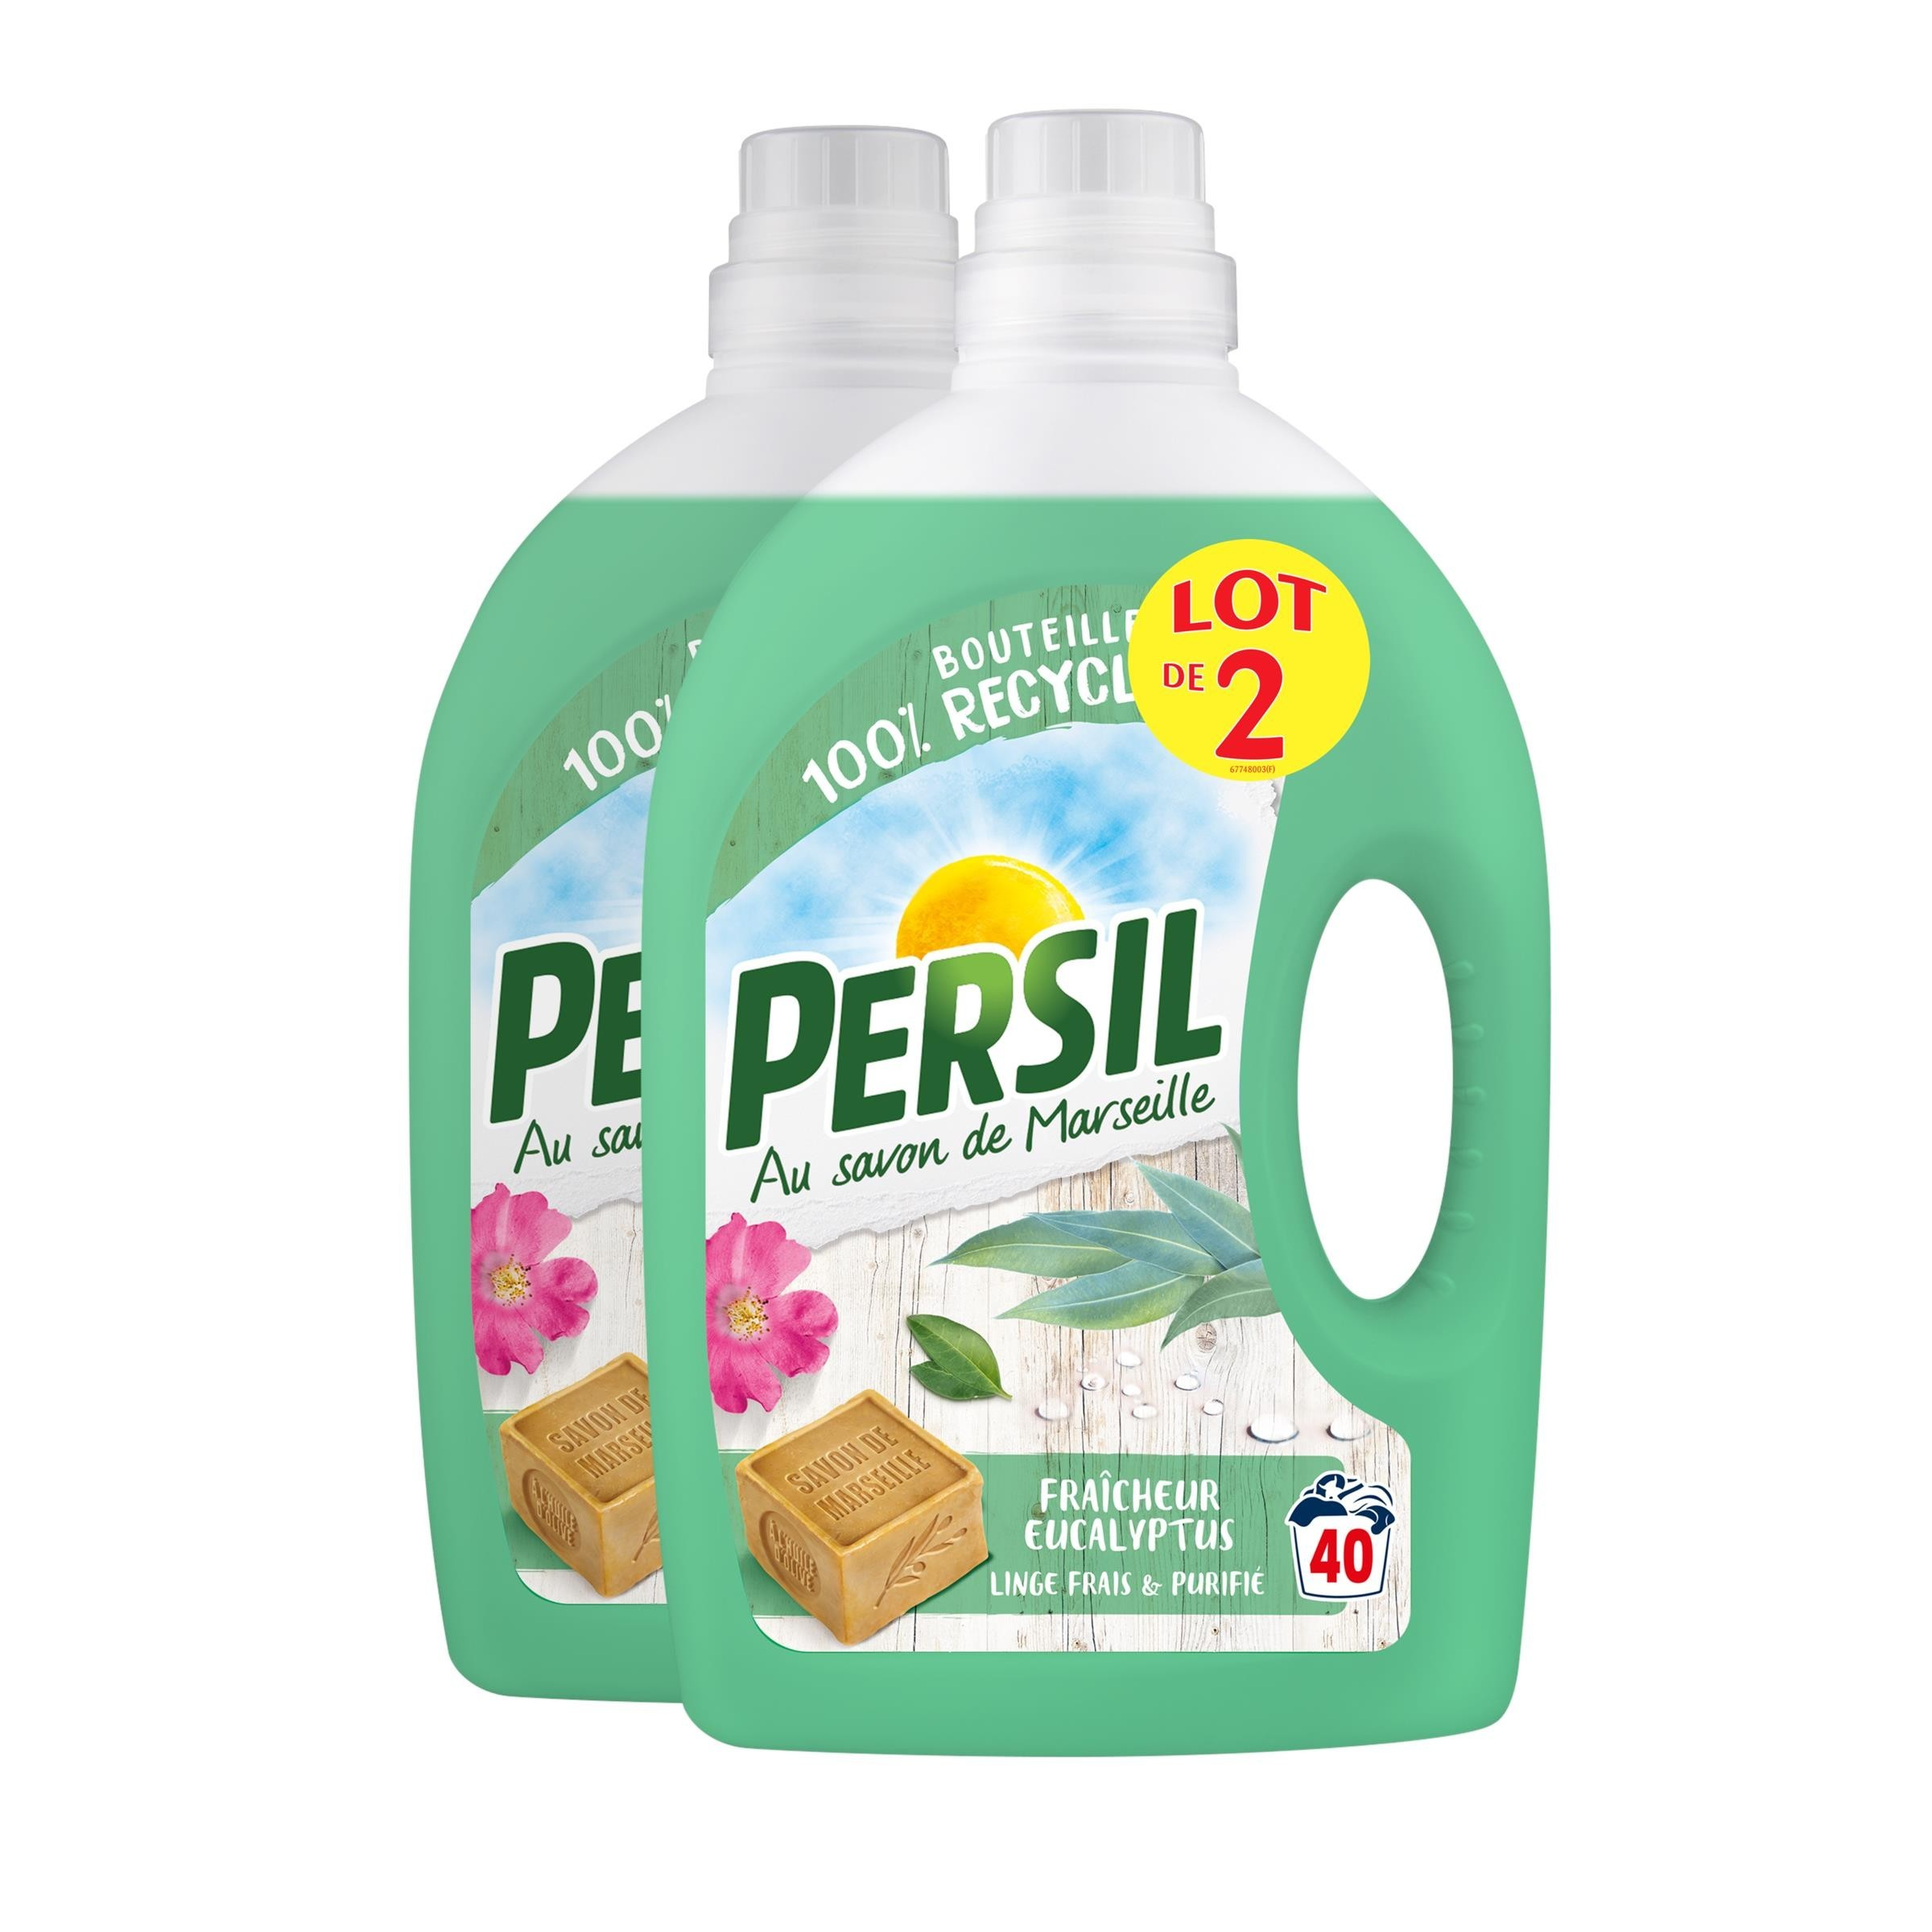 2 Truckloads of Assorted Persil Laundry Detergent, 8,880 Pieces/4,440 Packs/2,220 Cases, Ext. Retail €61,094, Fauverney, FR